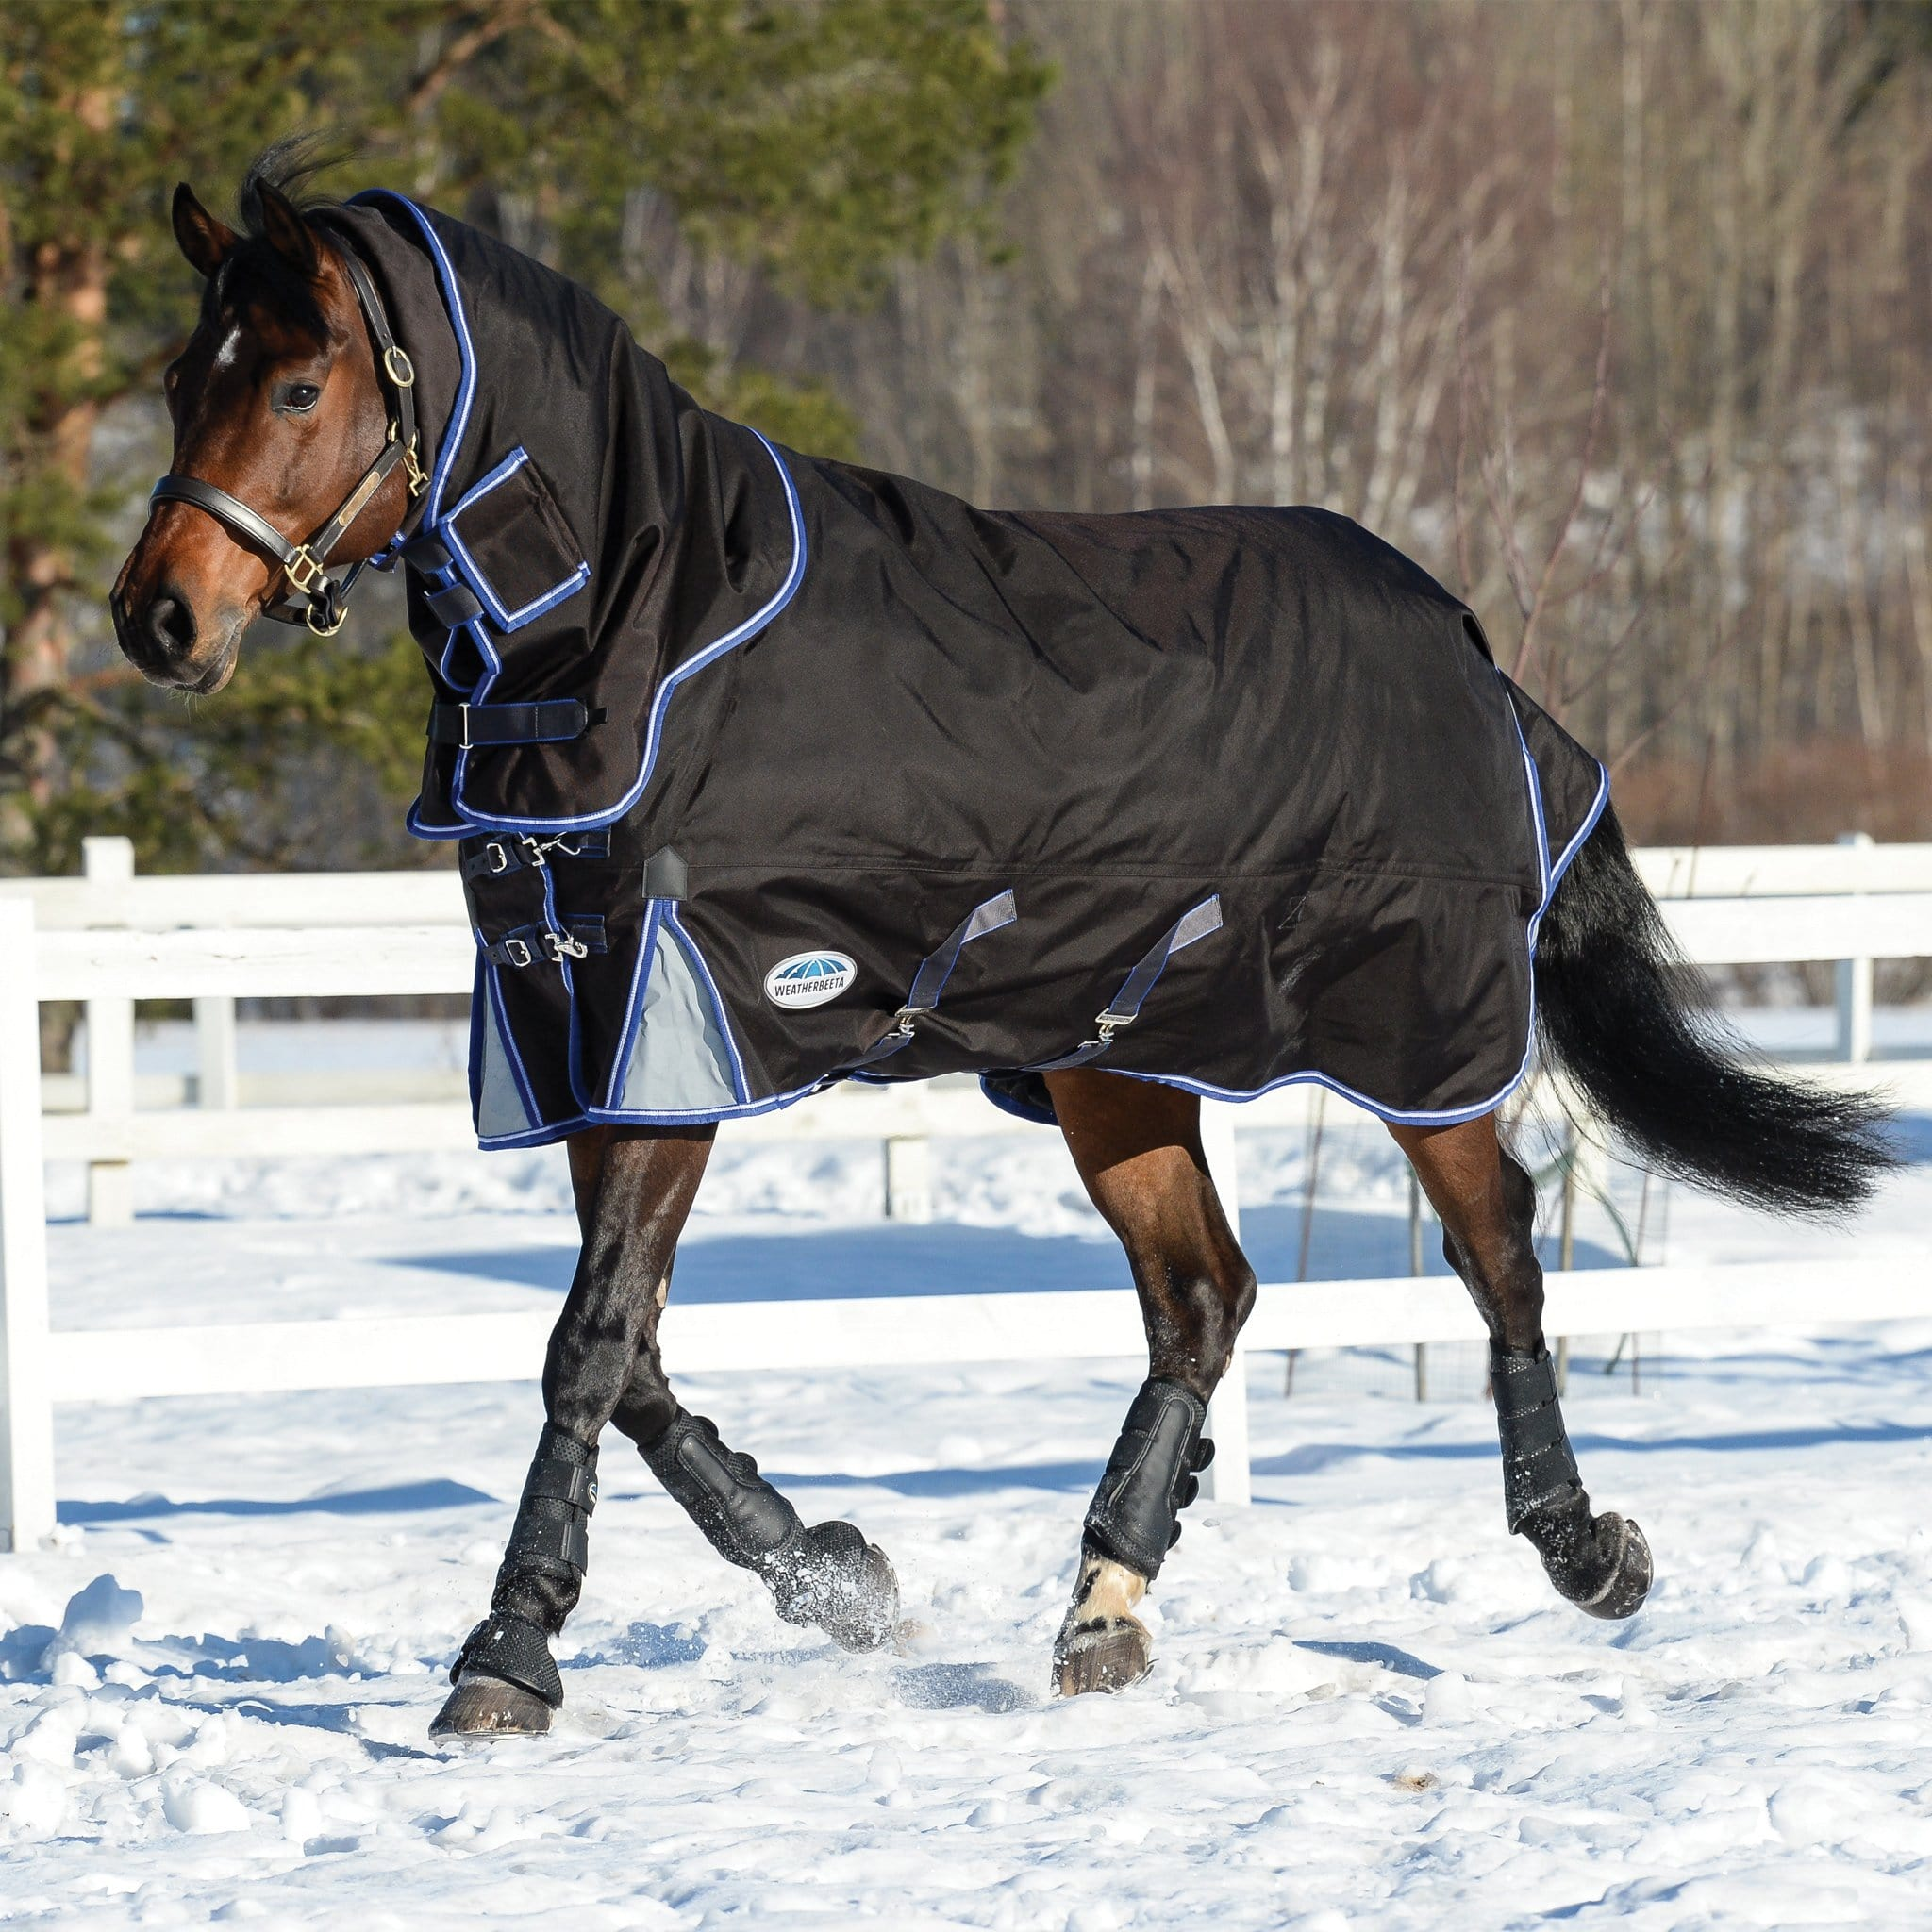 Weatherbeeta ComFiTec Ultra Cozi Heavyweight 360g Detachable Neck Turnout Rug Trotting in the Snow 800986